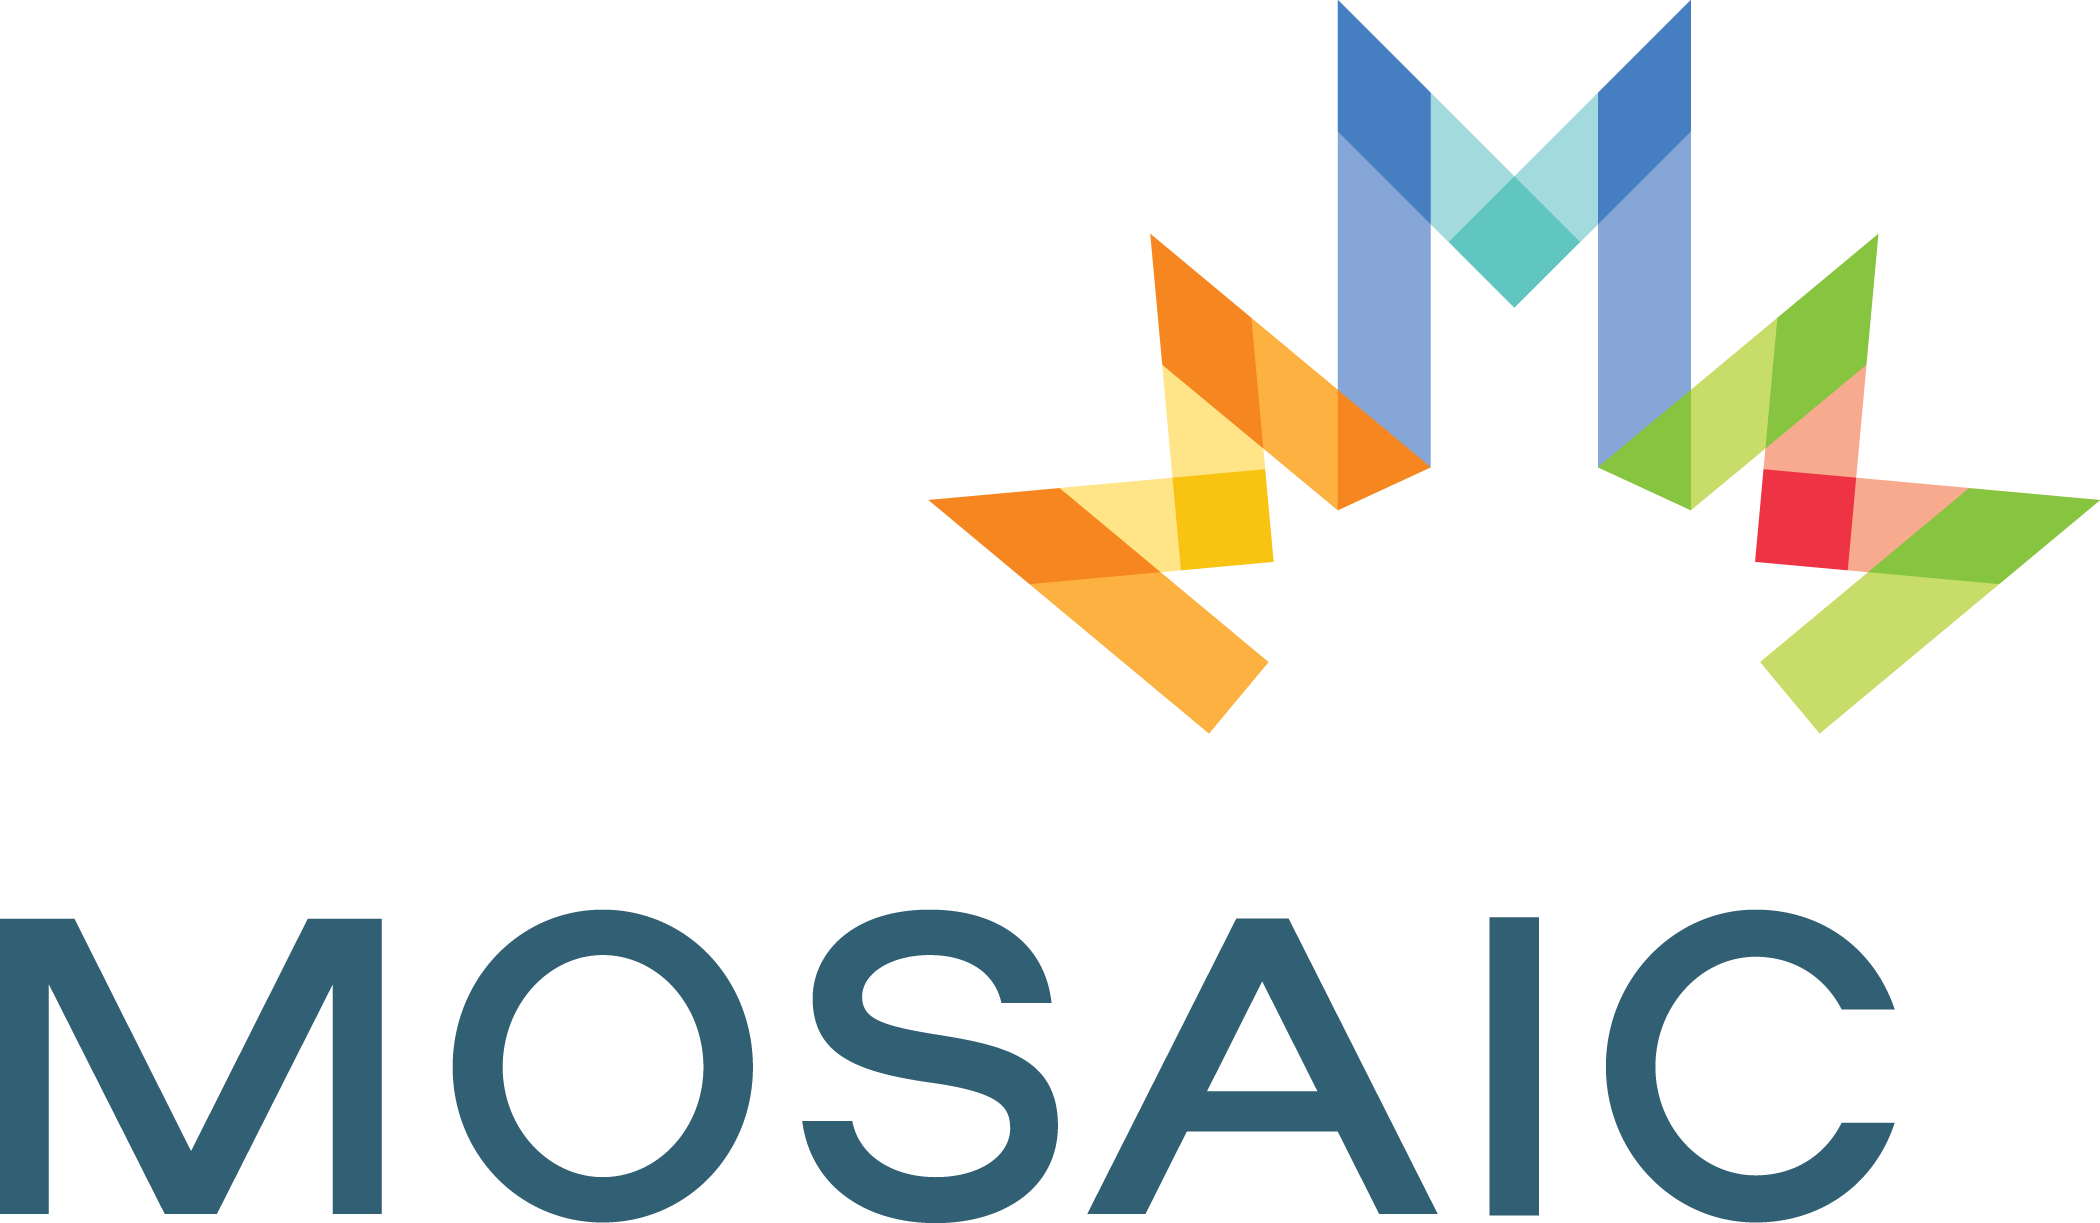 MOSAIC engage – Vancouver